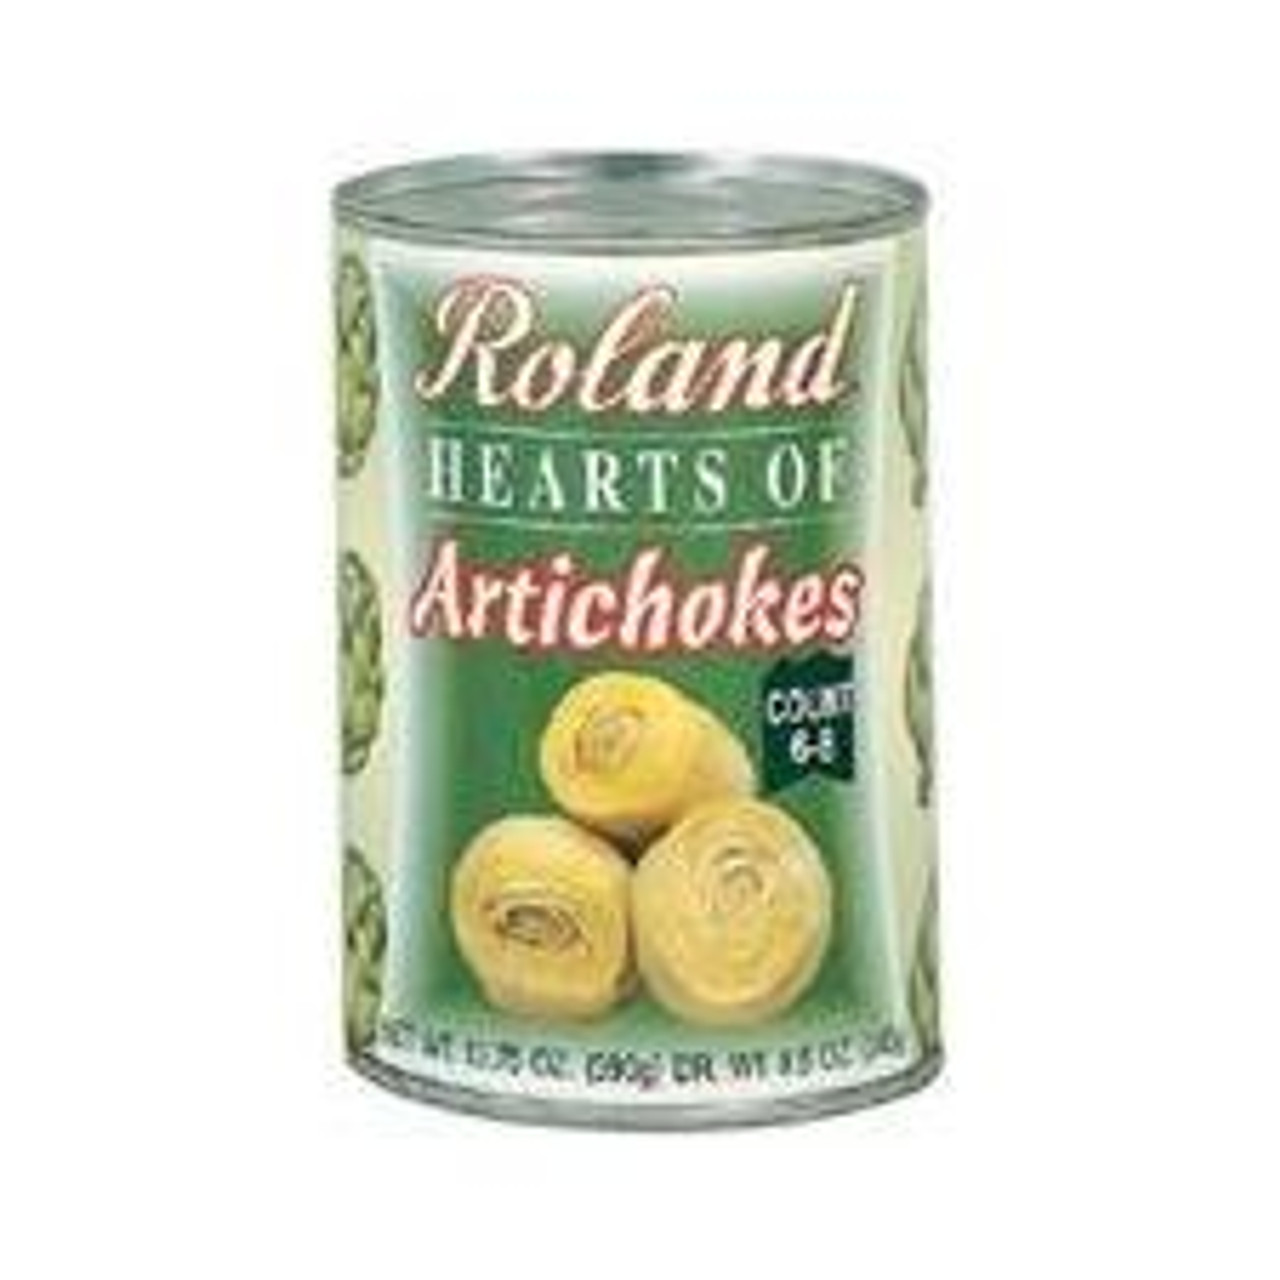 Hearts of Artichokes